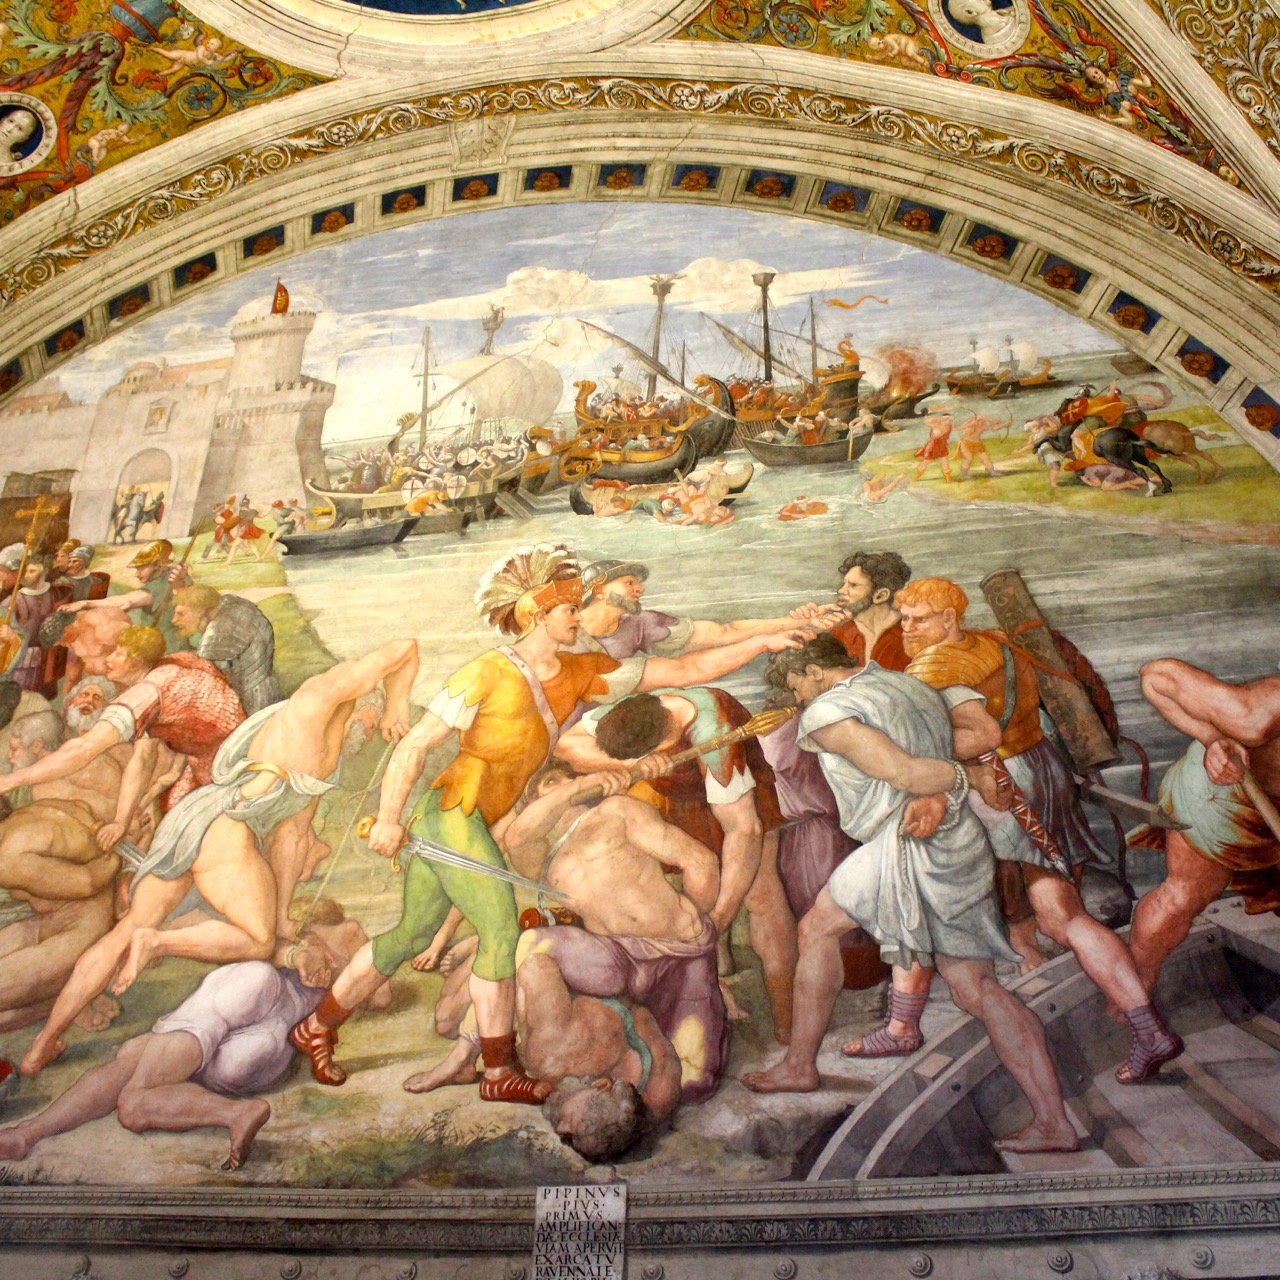 raphael painting in vatican museums